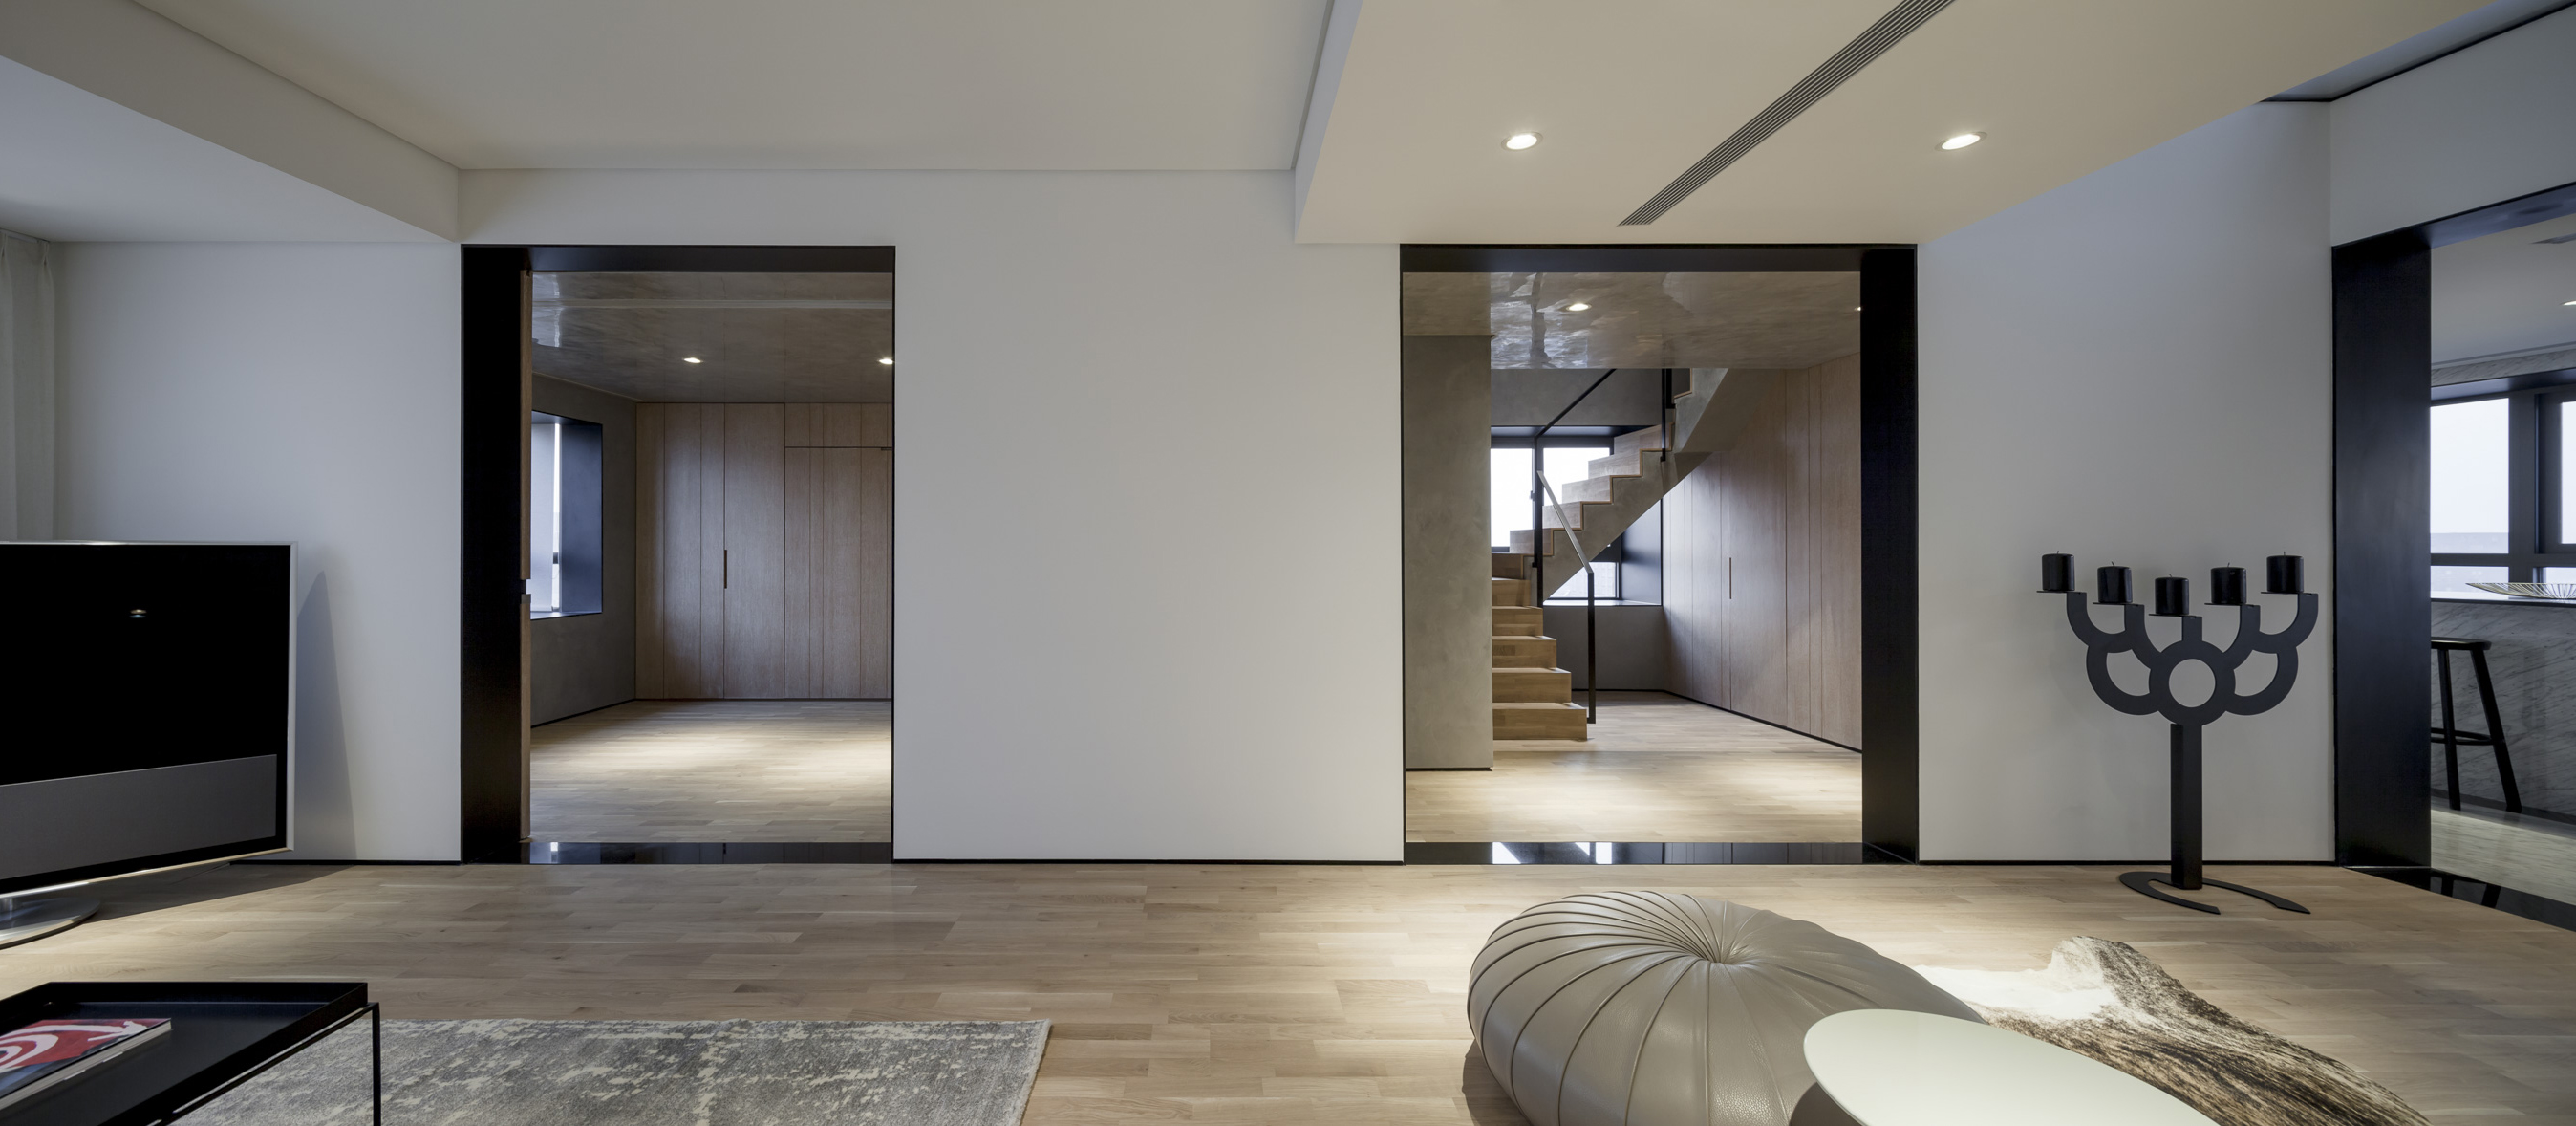 Onehouse_web_017